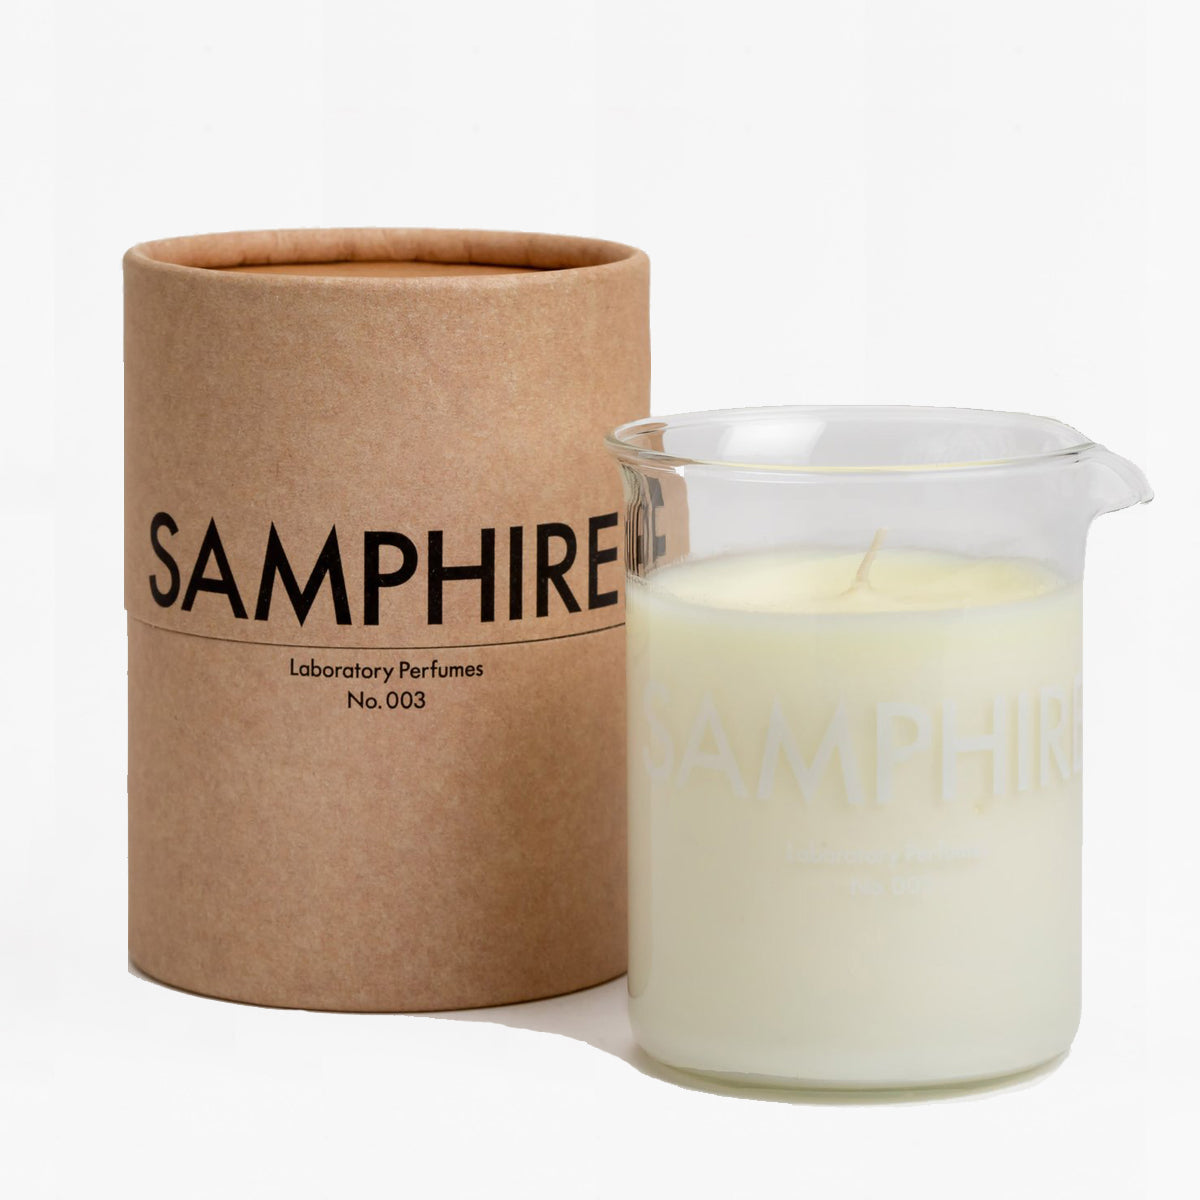 Laboratory Perfumes samphire scented candle